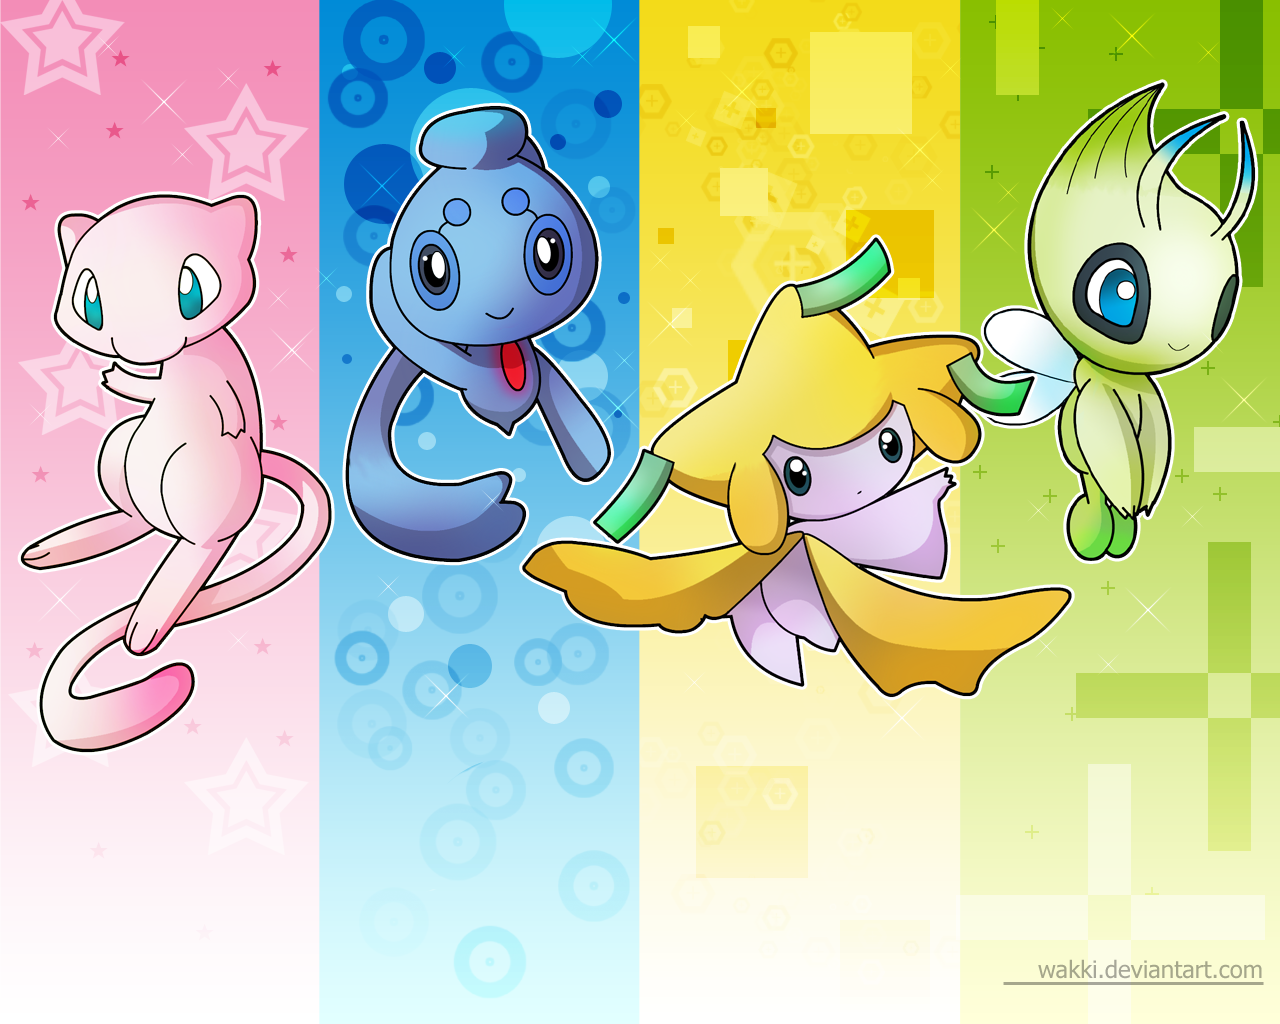 Pokemon Mew Phione Jirachi And Celebi Gaming Now